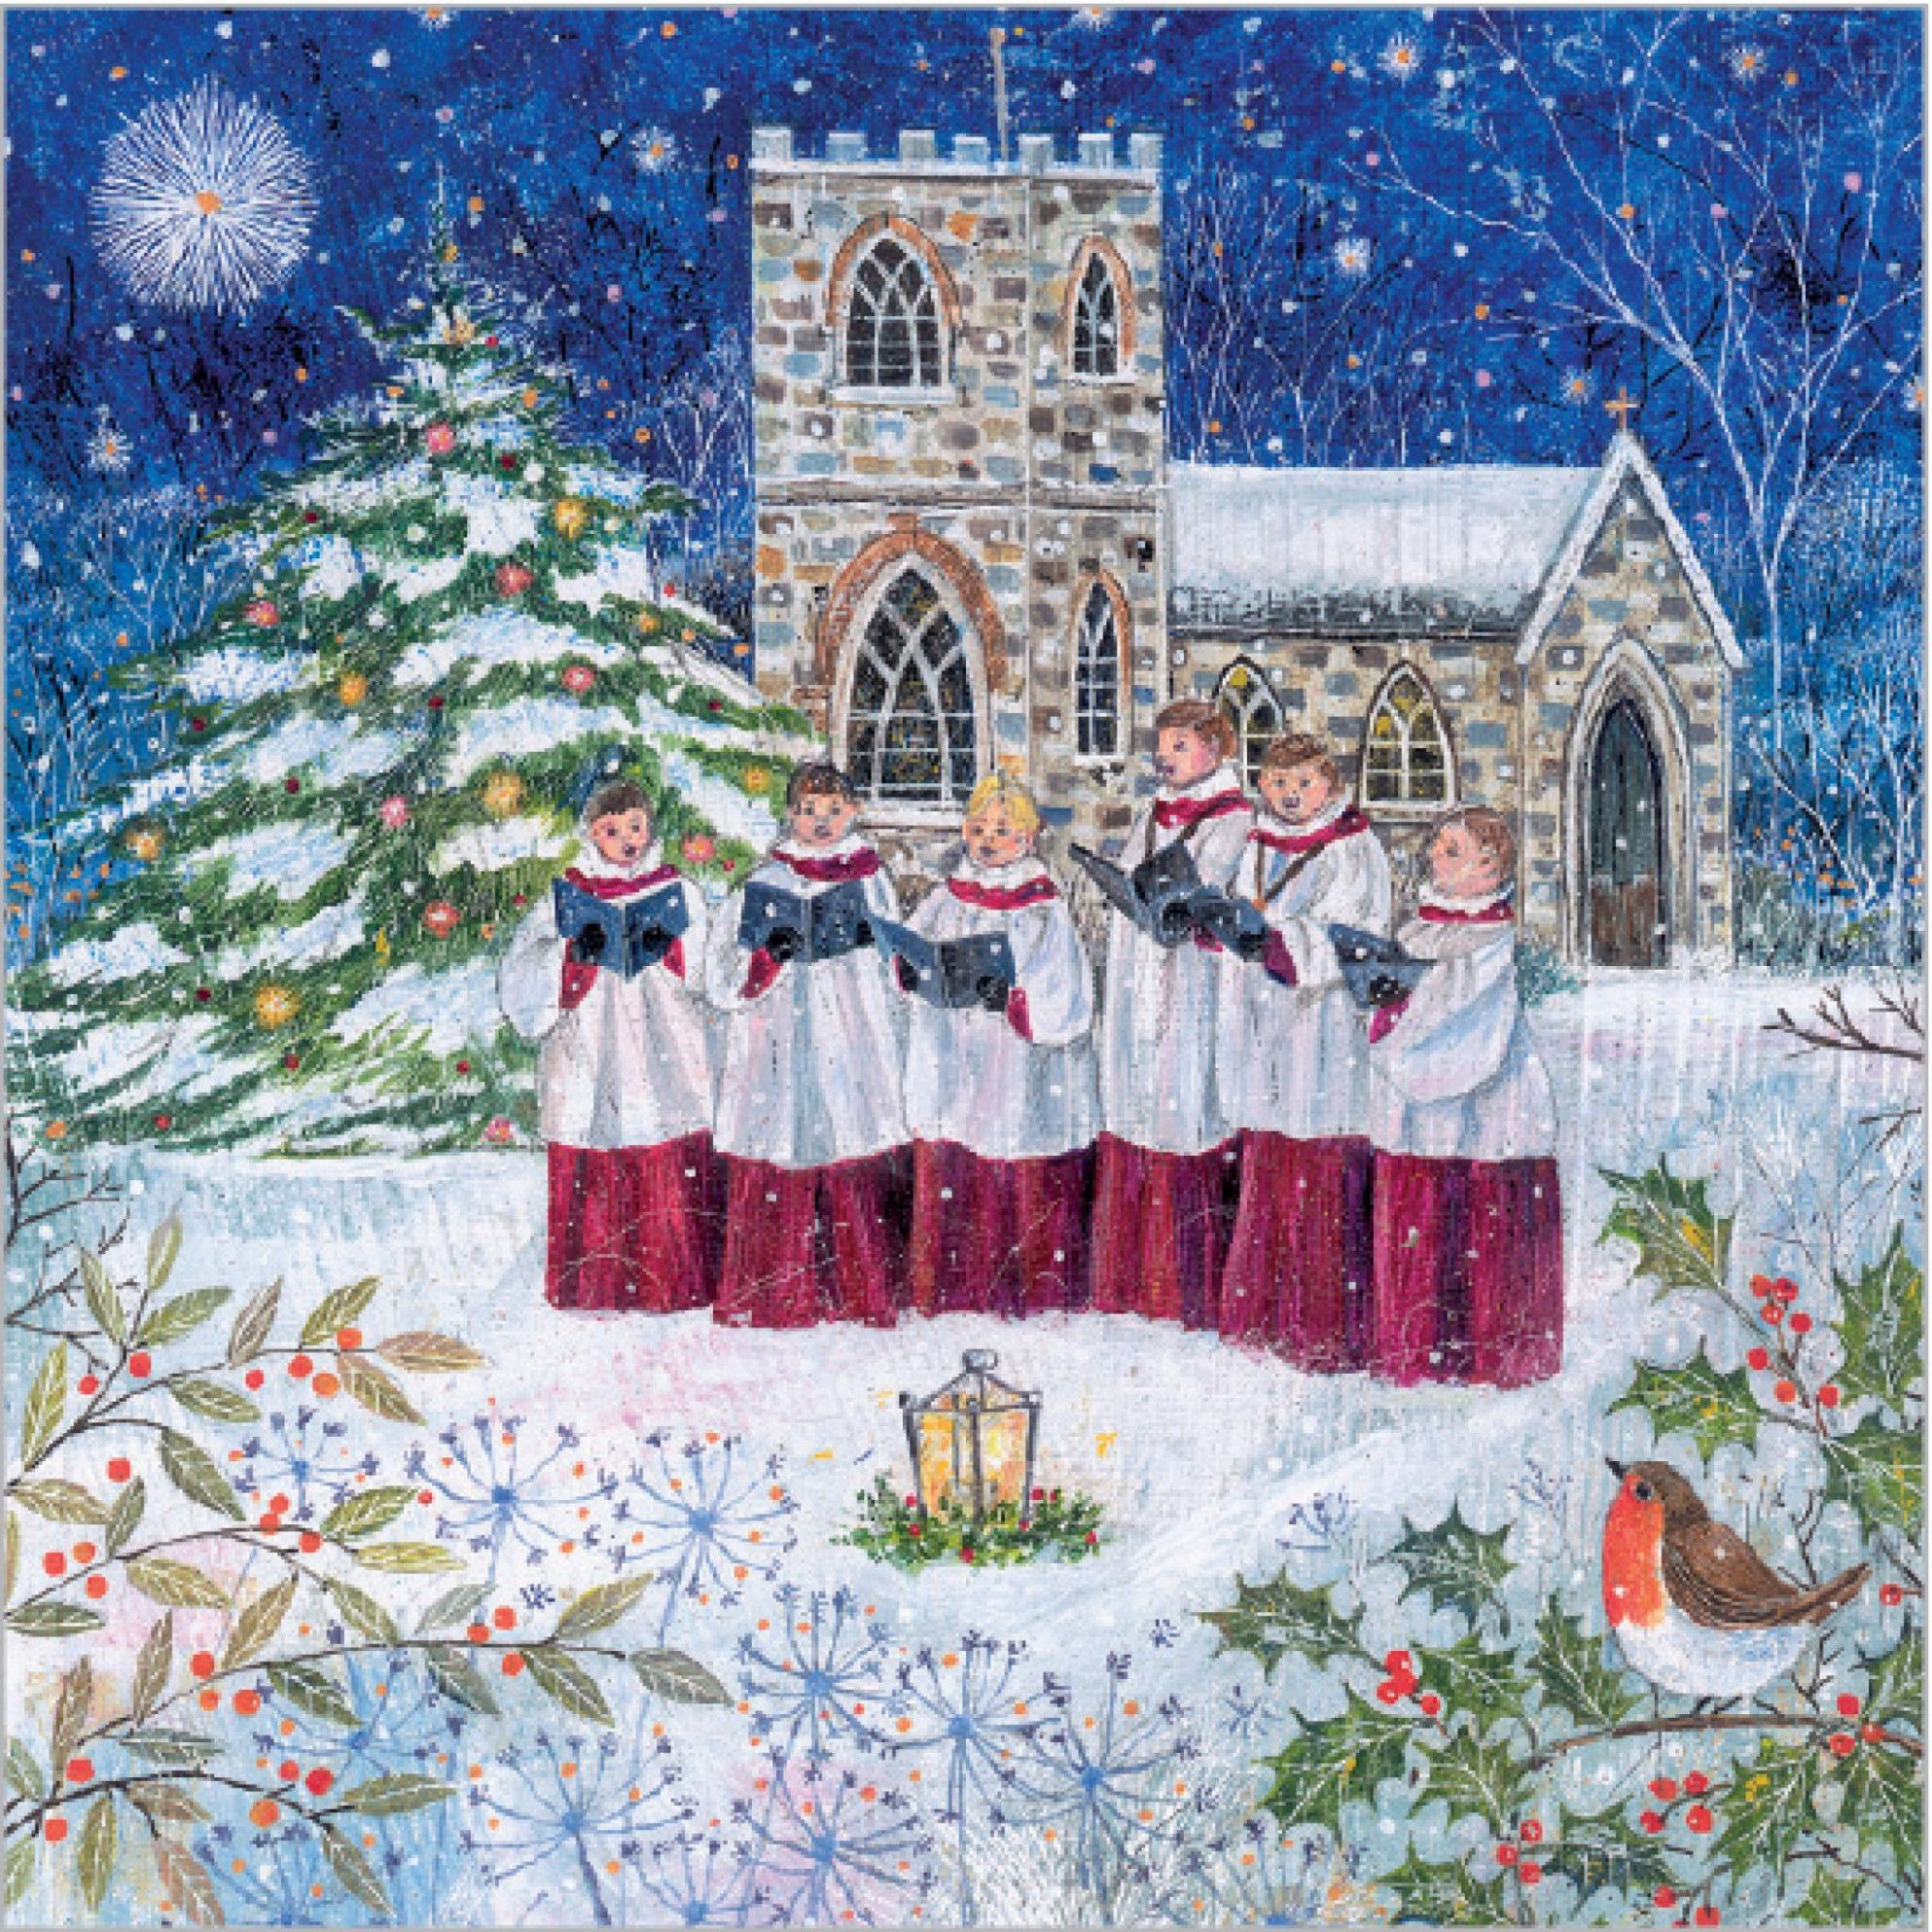 11 Singing Christmas Cards in 2020 Singing christmas